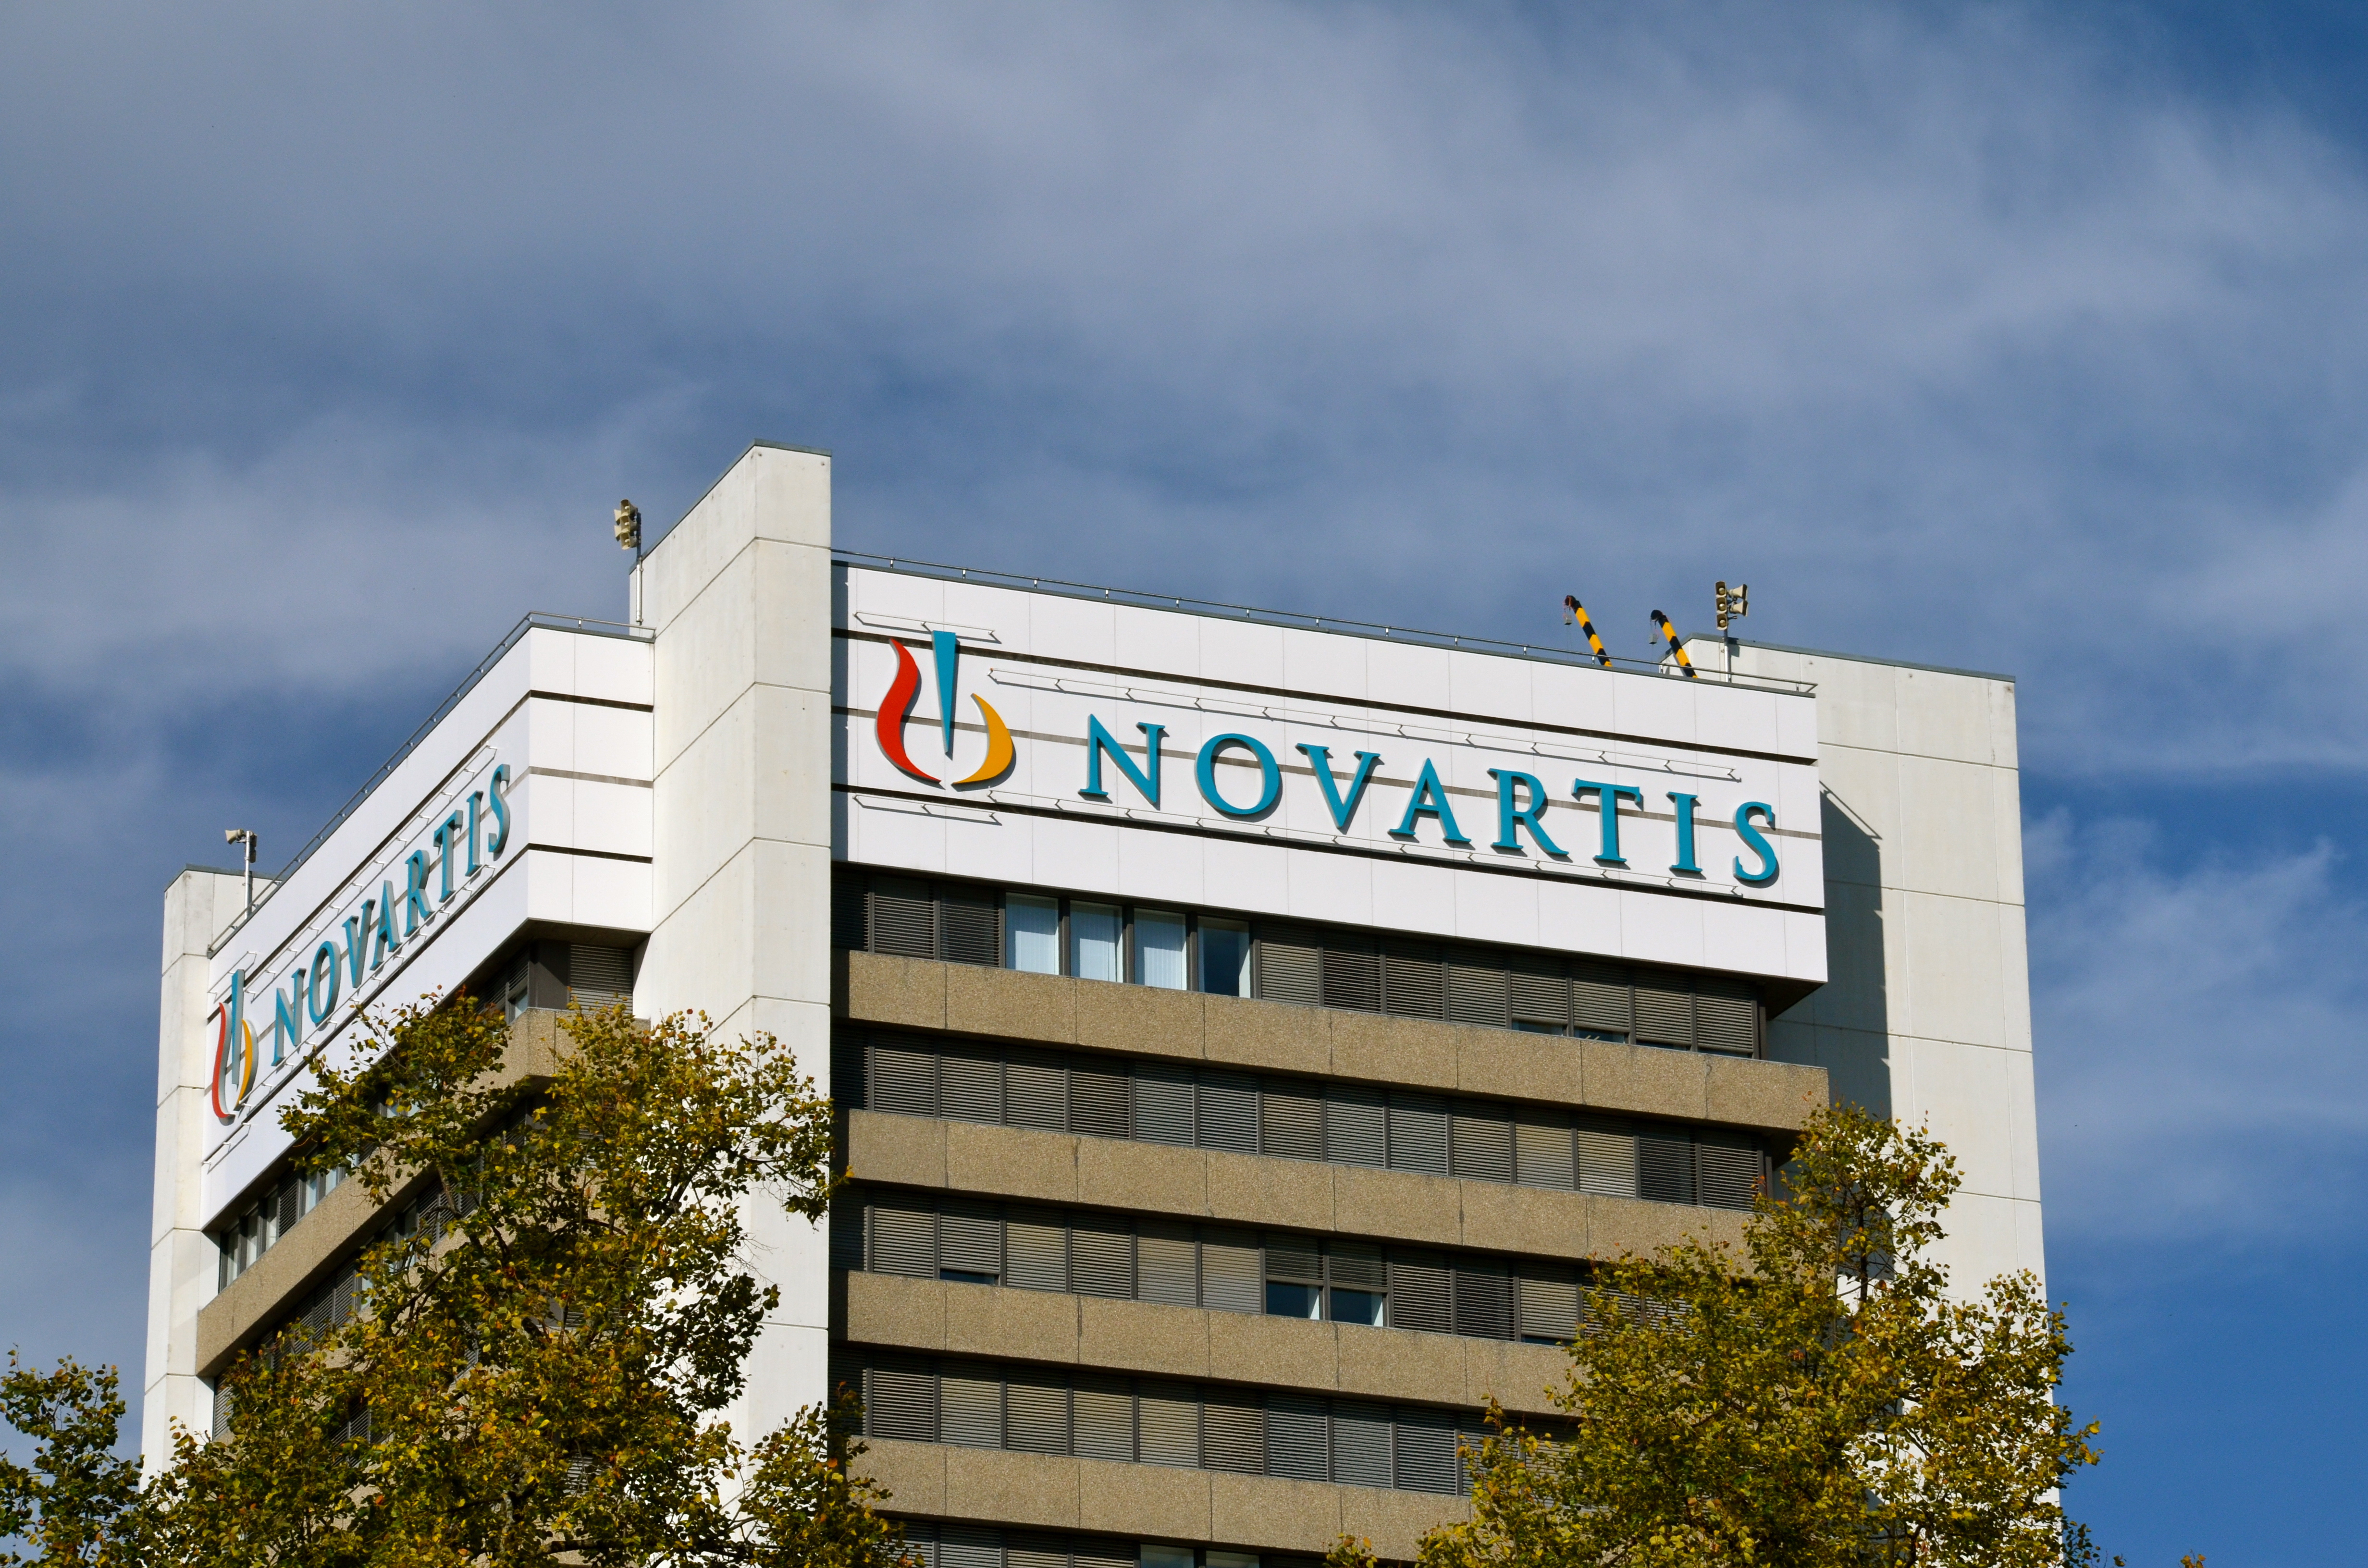 Novartis Reveals Promising Results on Phase III Trials for Two Therapeutic Drugs against COPD